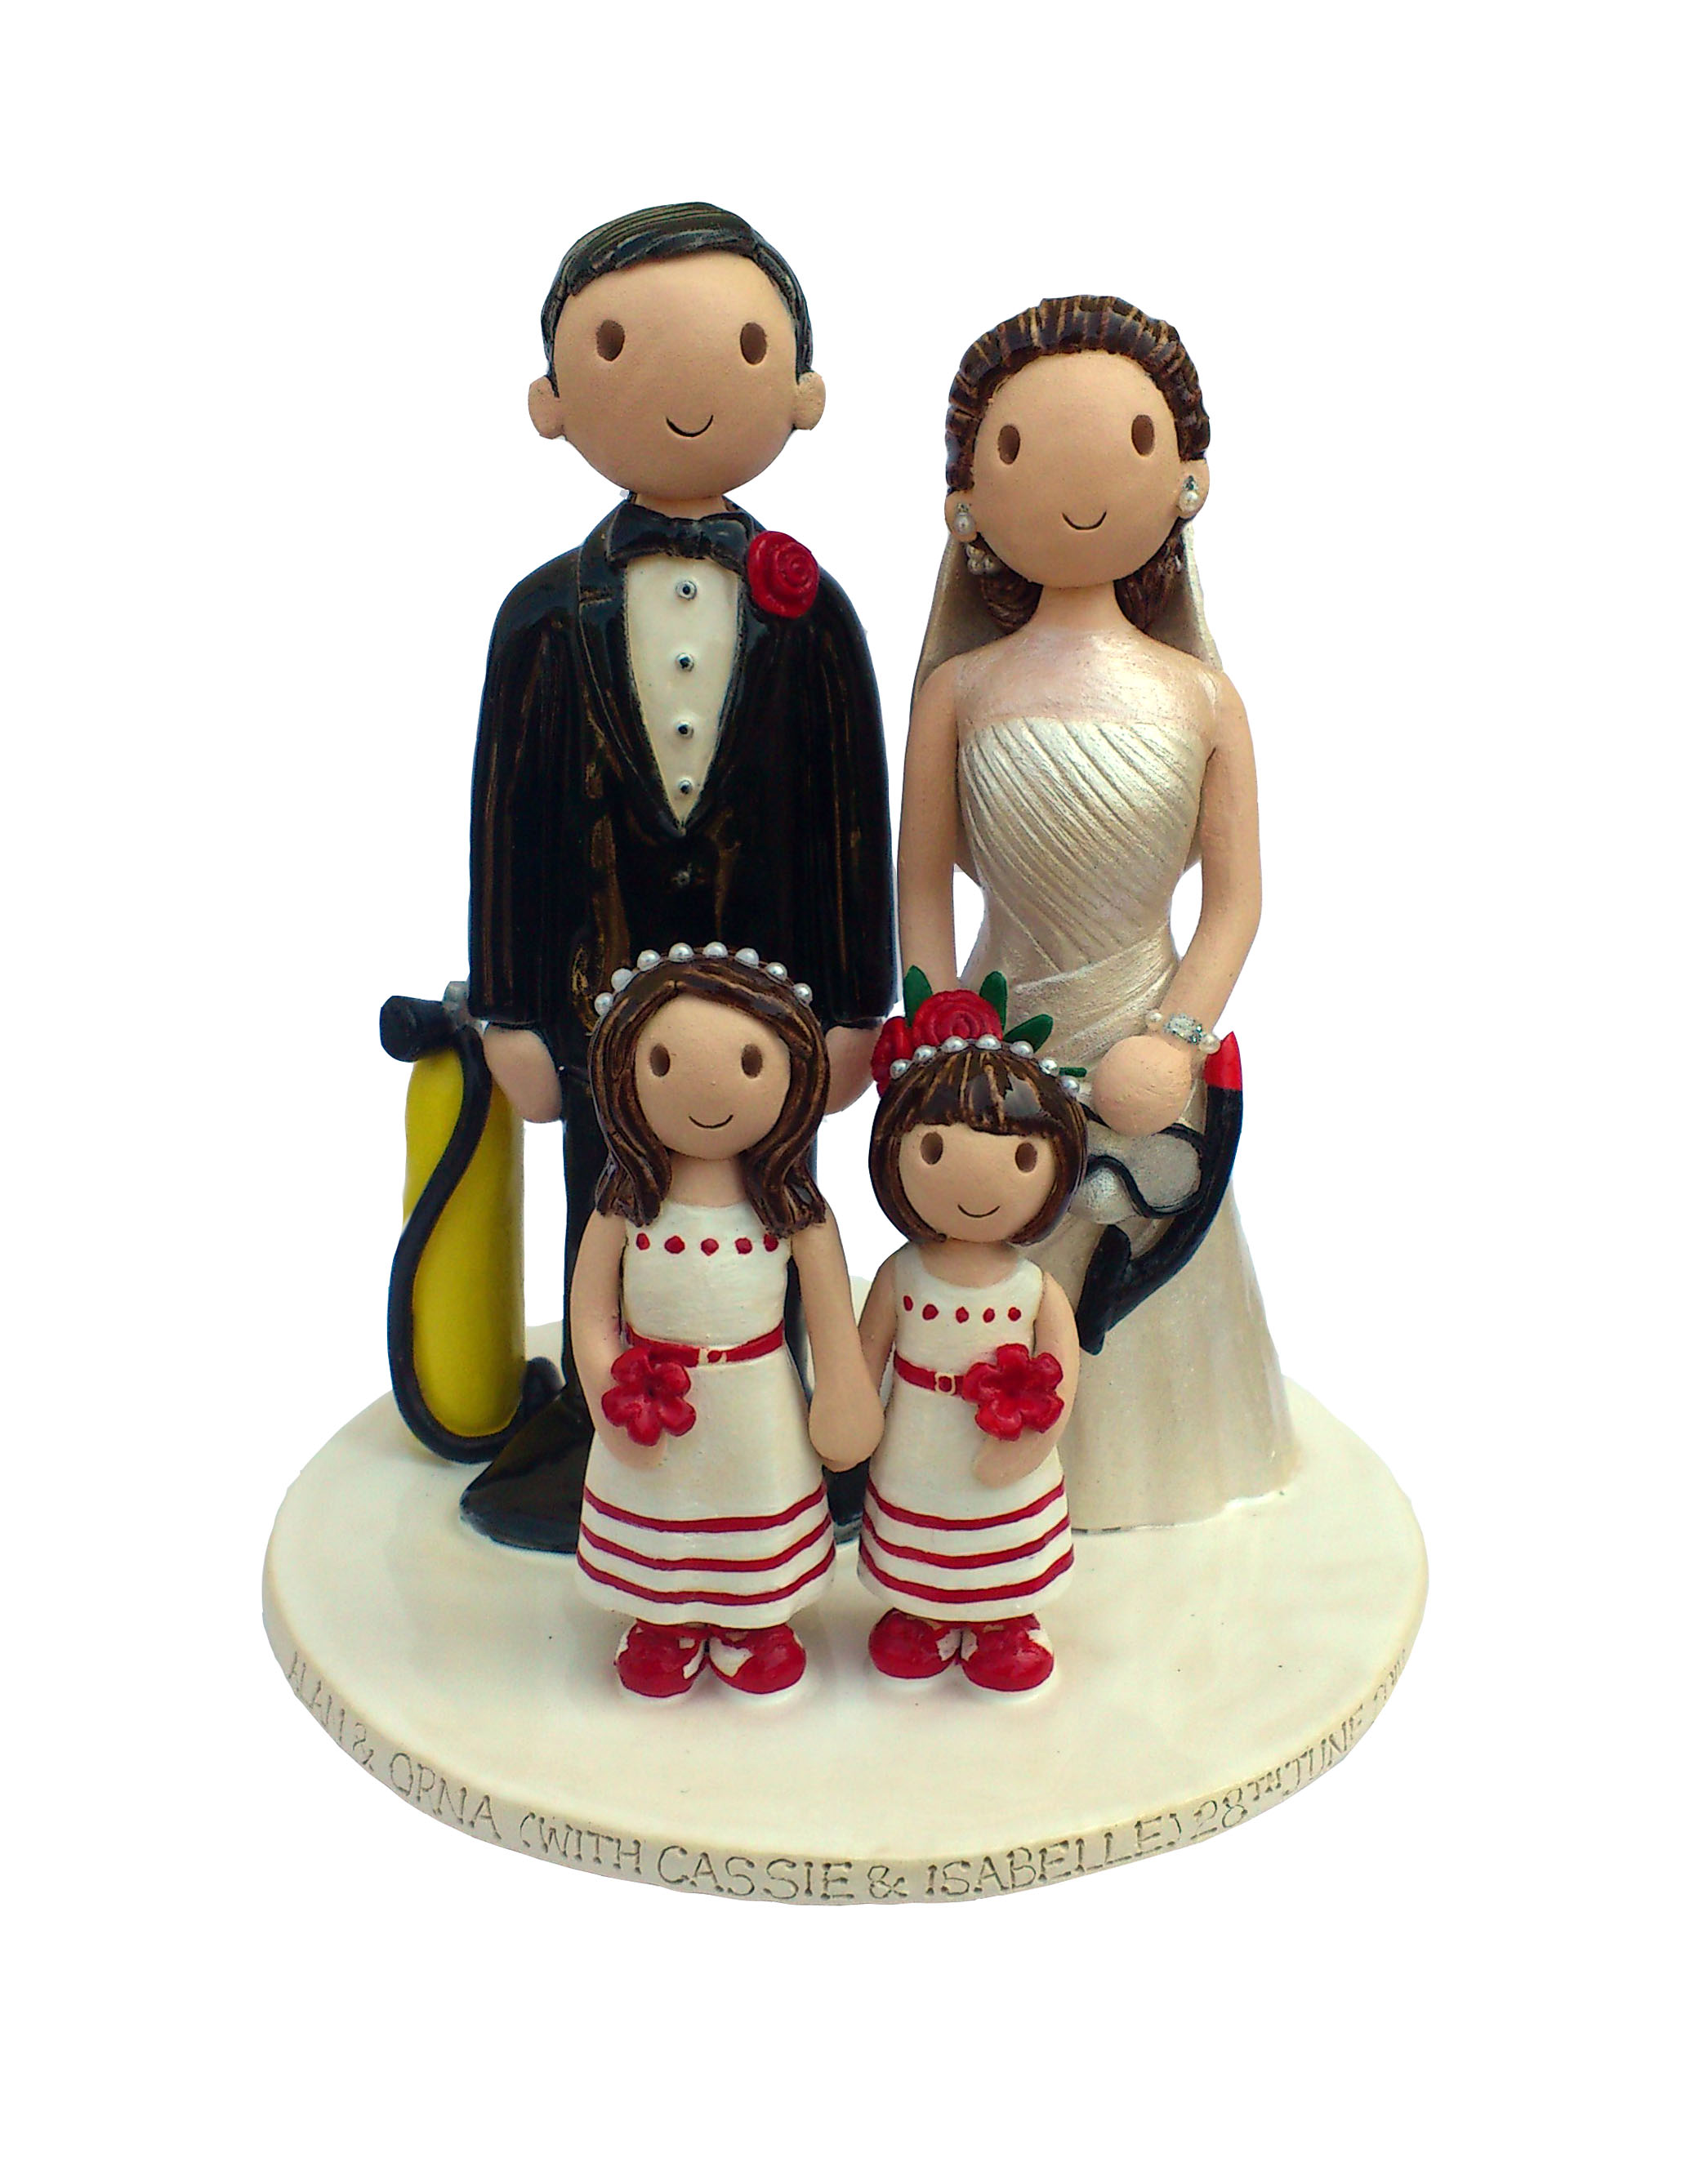 Wedding Cake Toppers Gallery. Hand Made, Personalised Cake